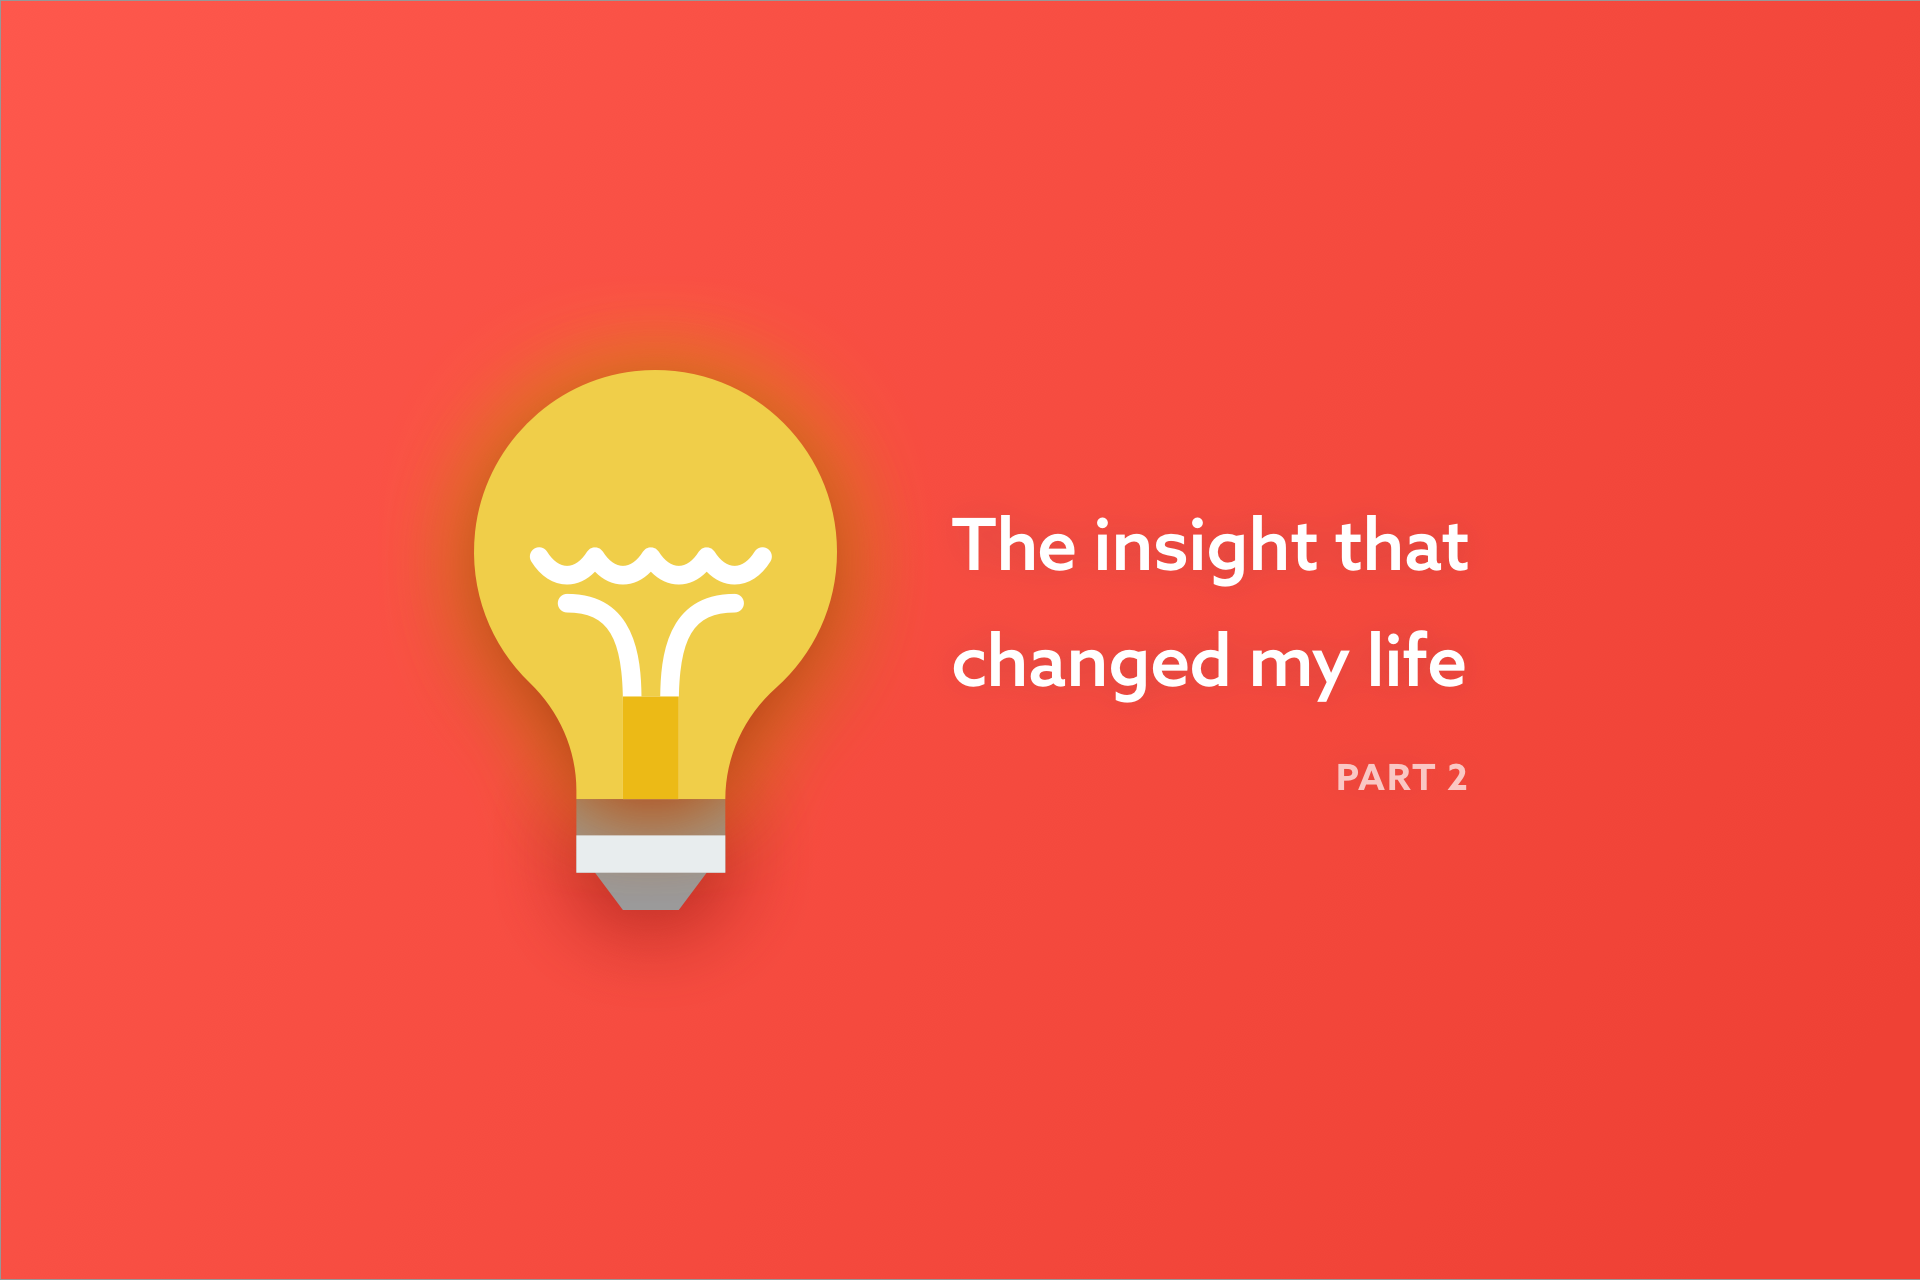 The insight that changed my life (Part Two)